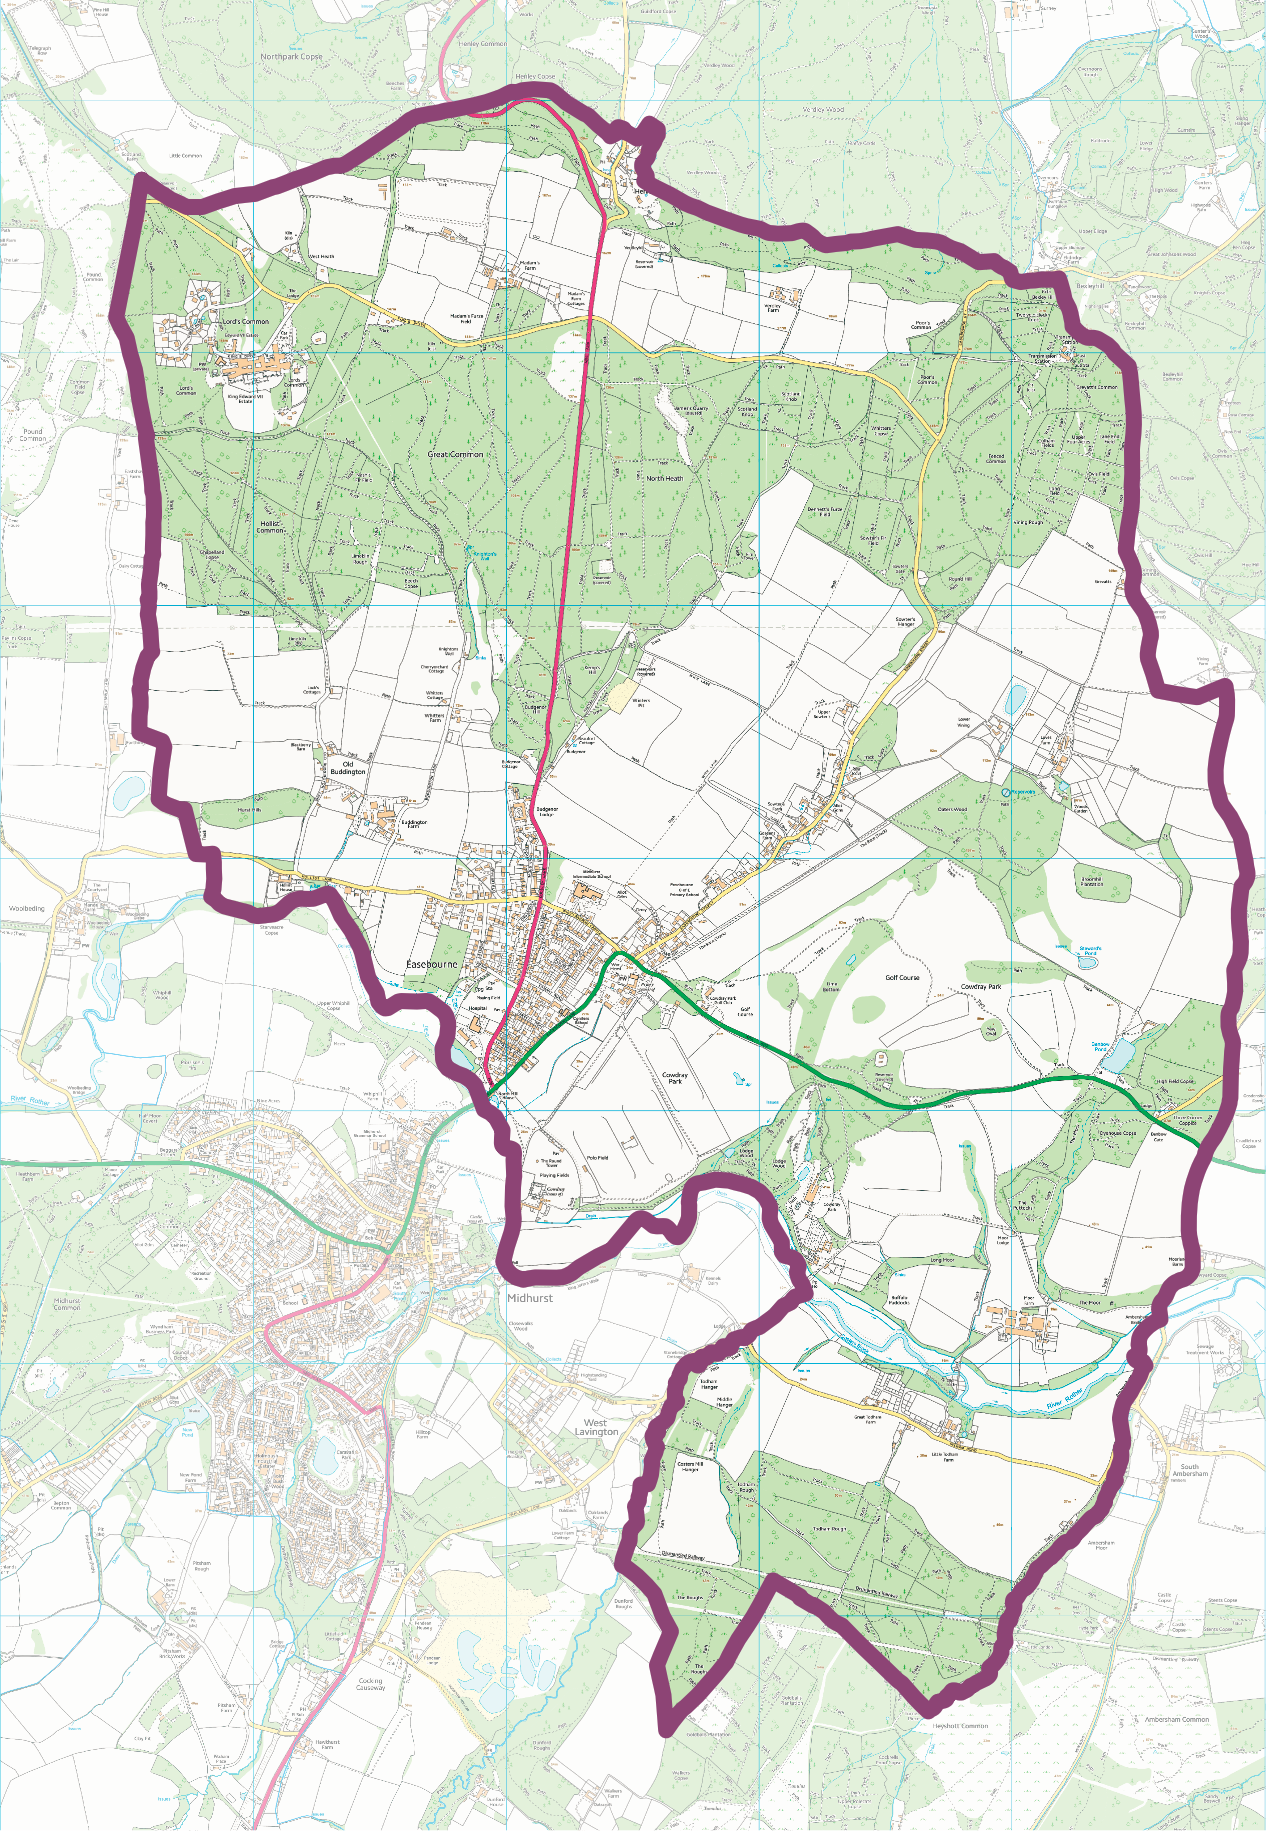 Map of Easebourne